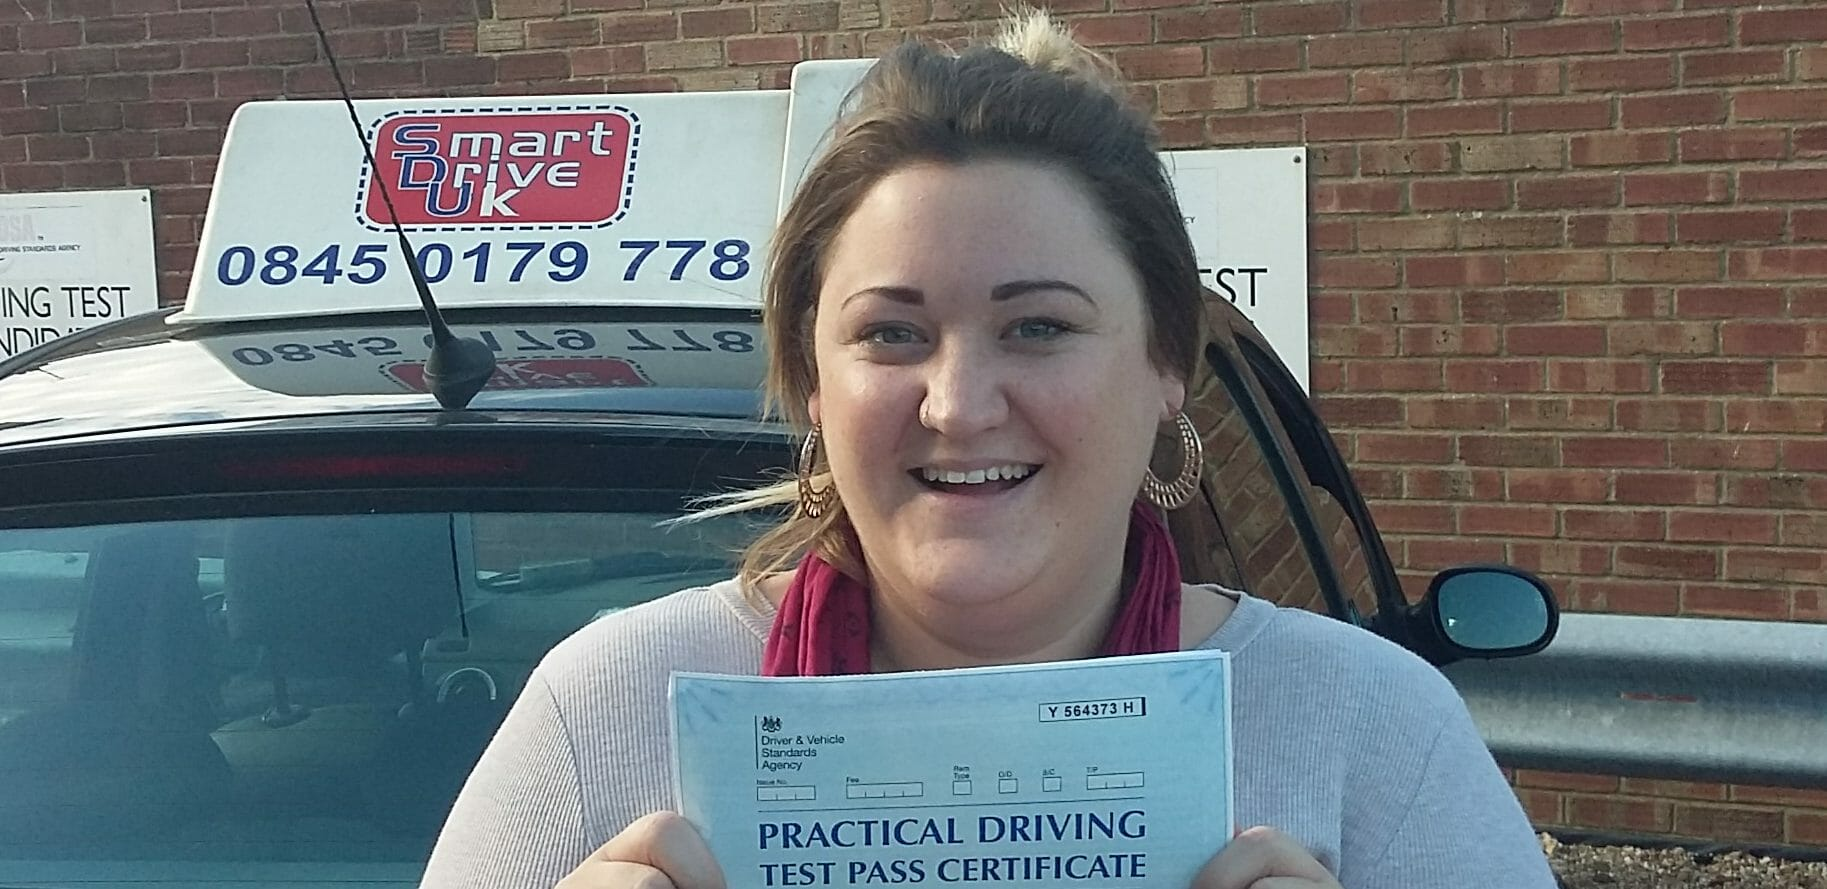 First Time Pass!! Congratulations to Olivia Anstiss of Worthing